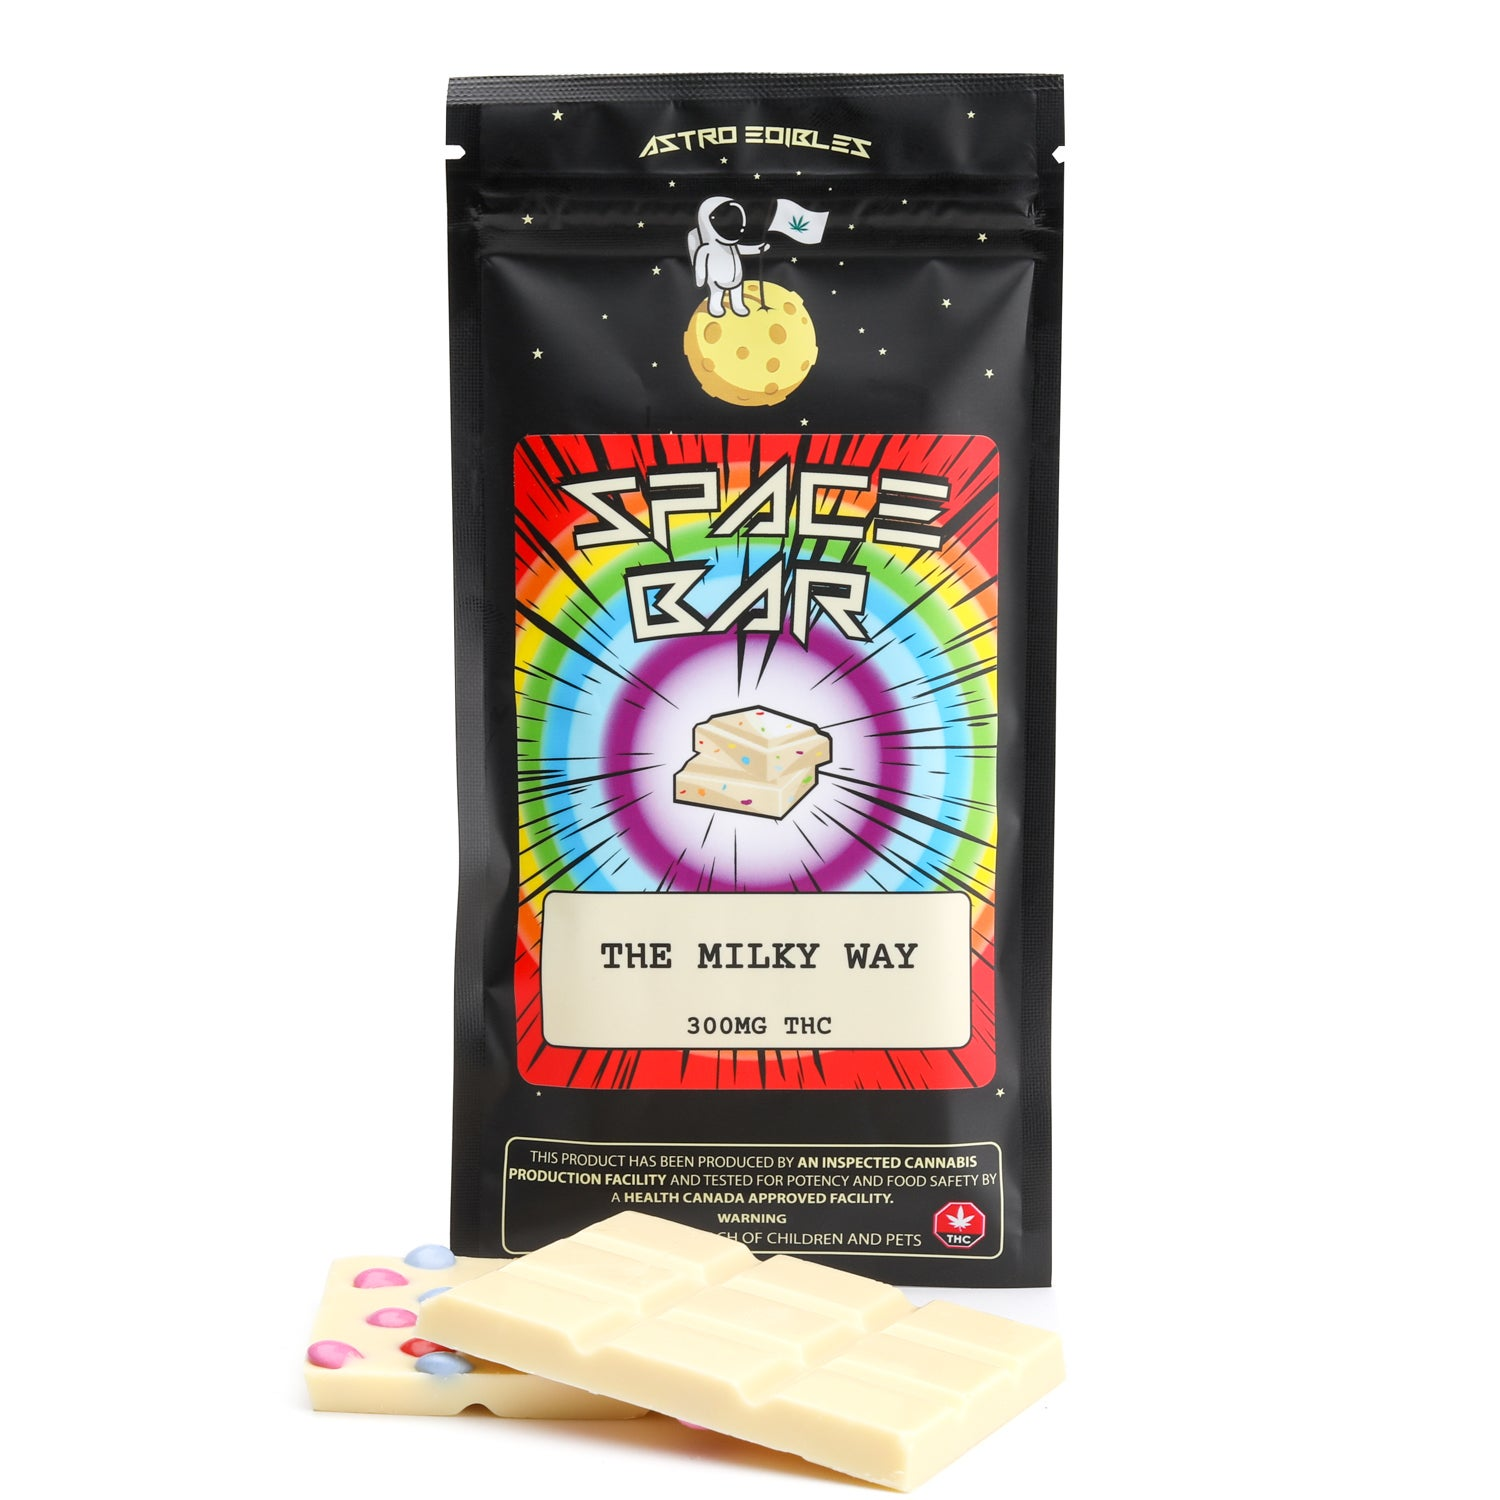 Astro Space Bar 300mg THC